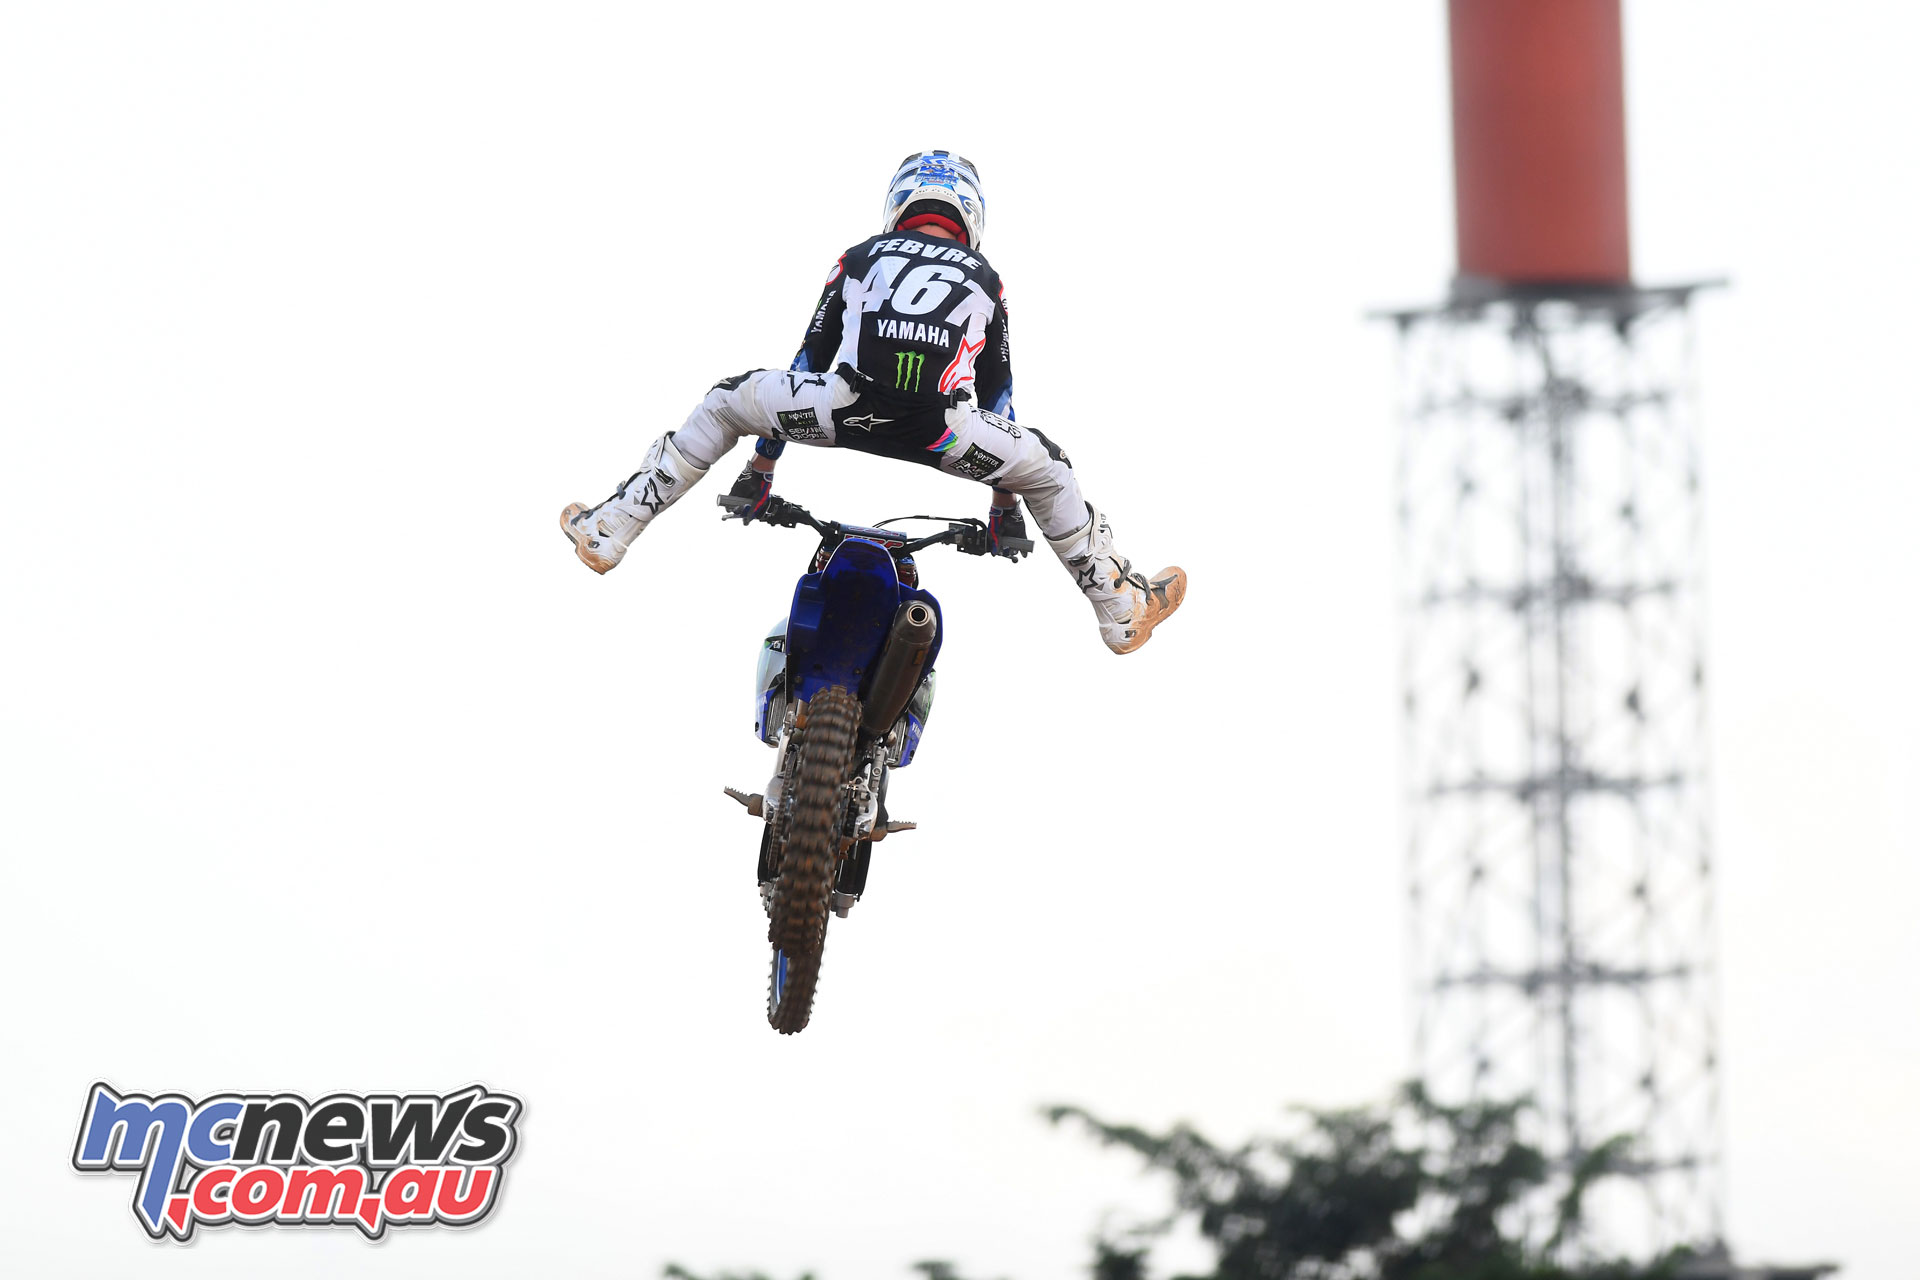 MXGP Indonesia MX Febvre finish